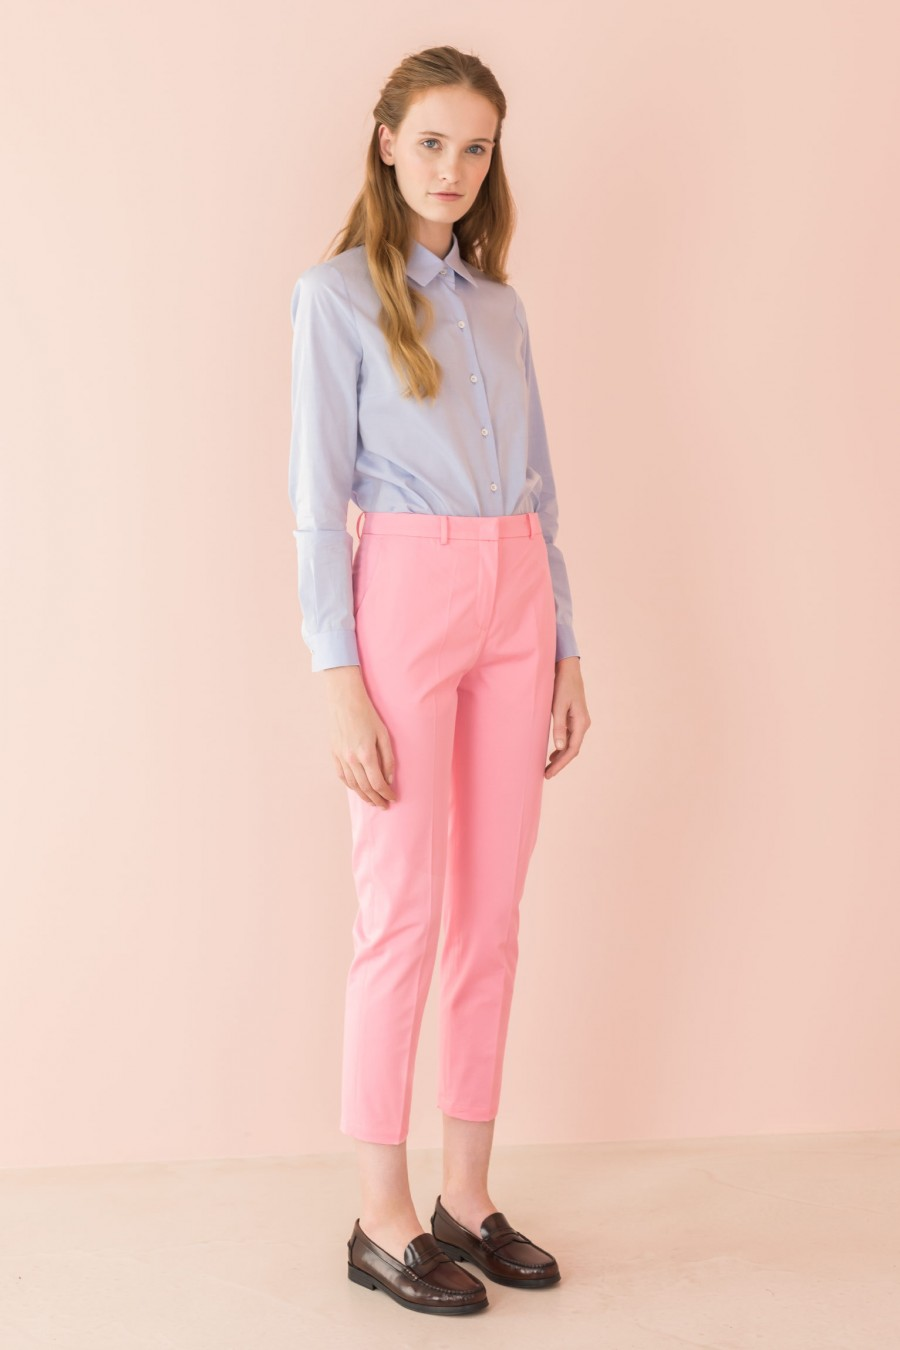 pink drainpipe trousers